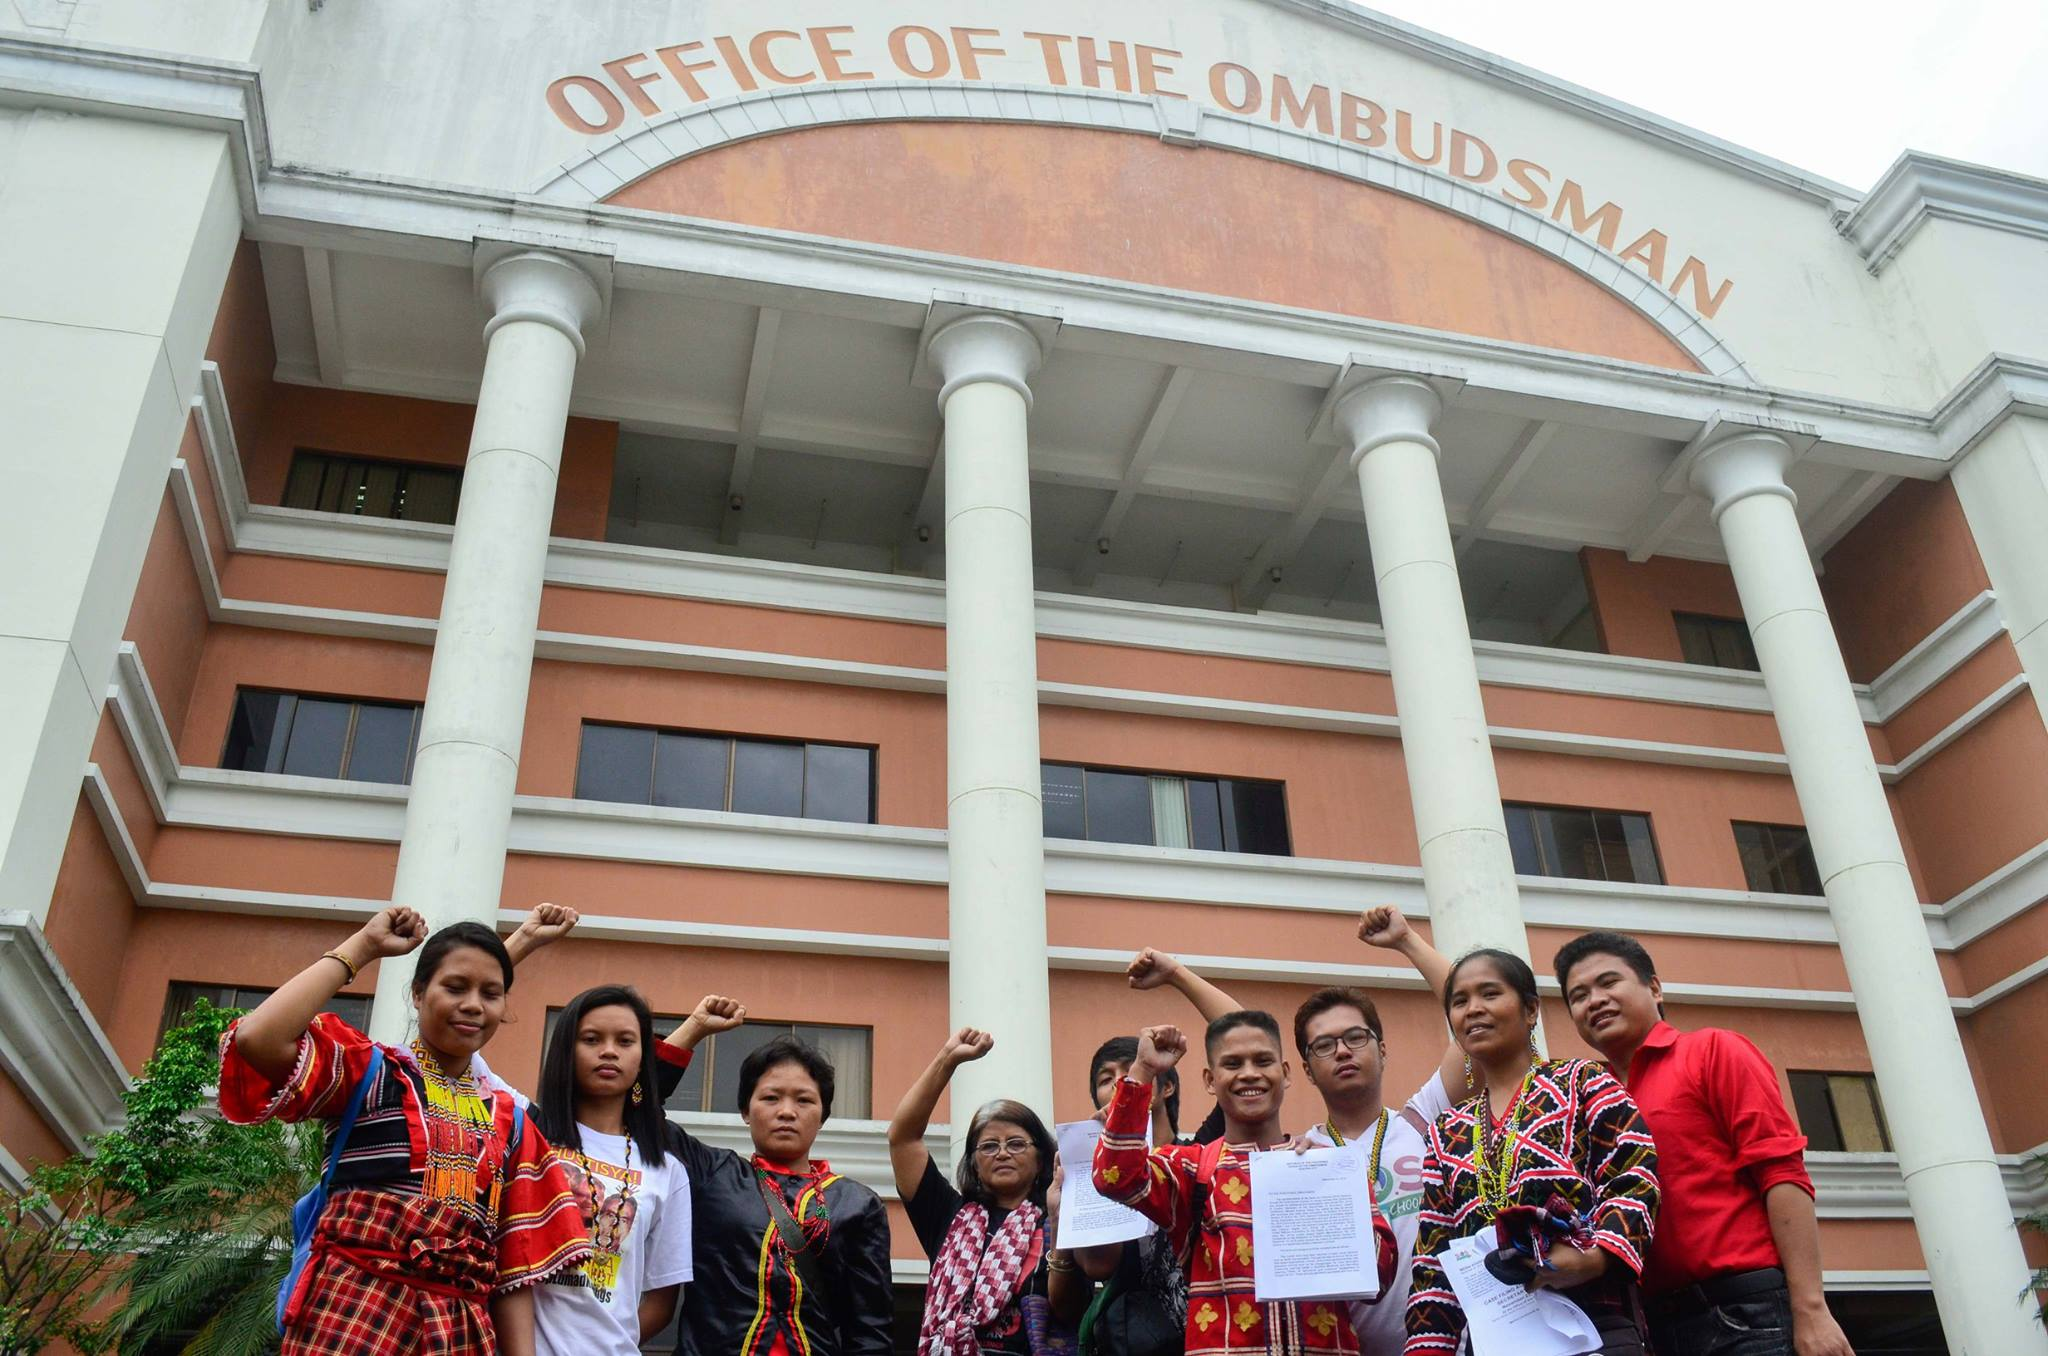 The Save our Schools (SOS) Network together with the Lumad community leaders, students and teachers filed administrative charges against Education Secretary Bro. Armin Luistro at the Office of the Ombudsman on Monday, Nov. 23. (Photo by Tudla Productions)